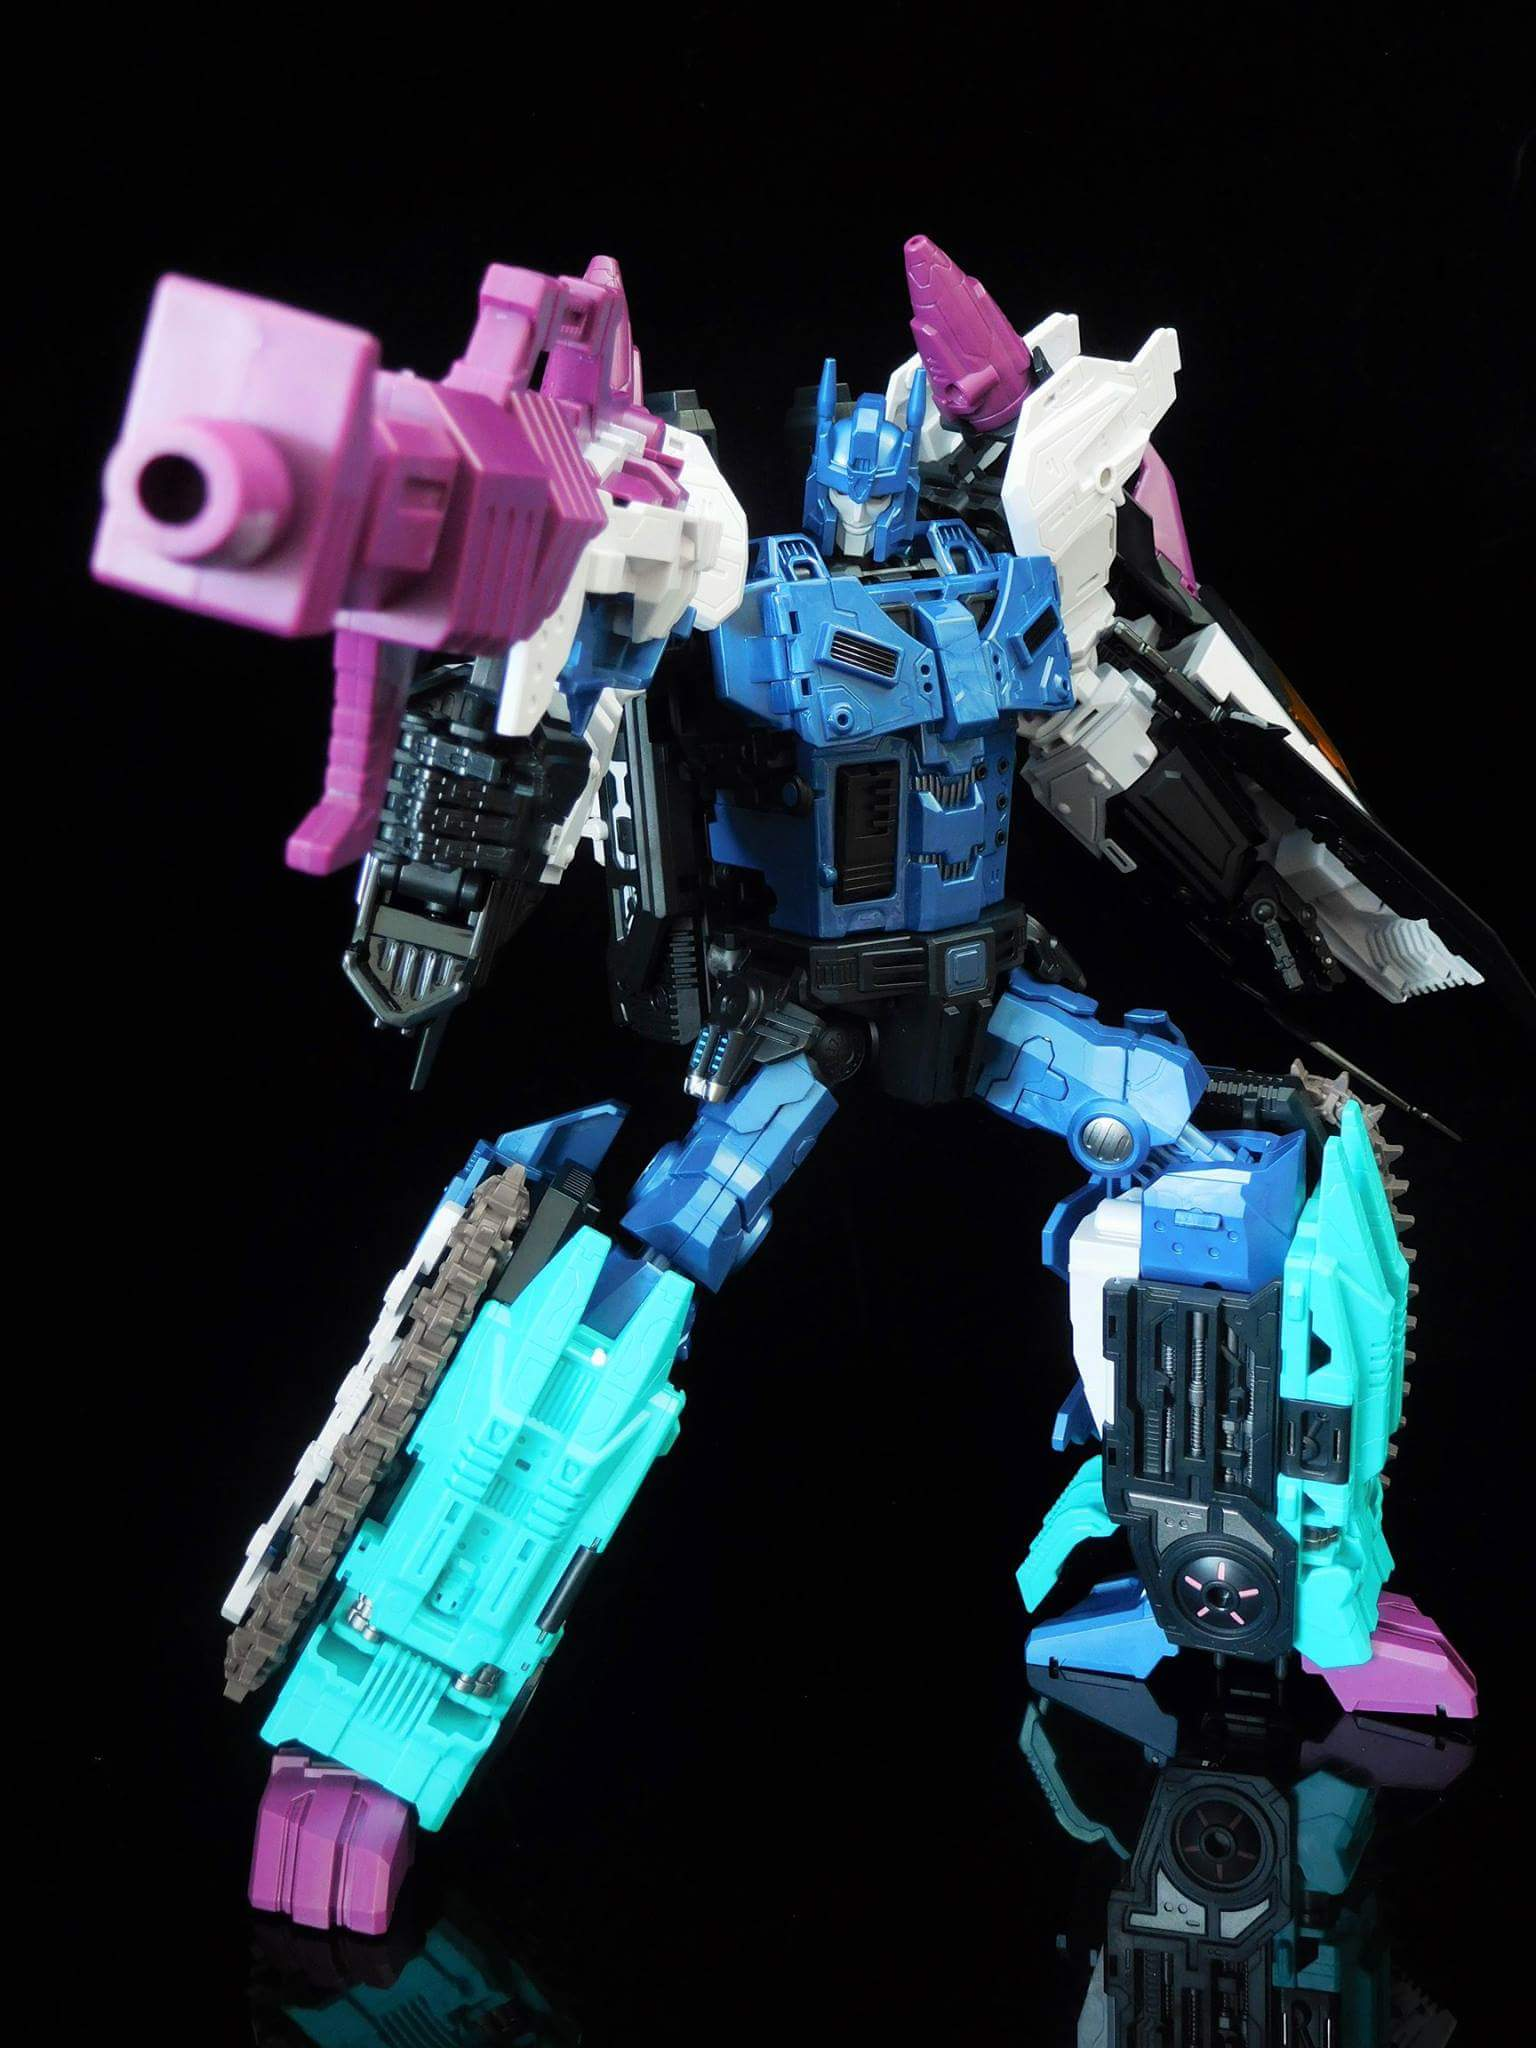 [Mastermind Creations] Produit Tiers - R-17 Carnifex - aka Overlord (TF Masterforce) - Page 3 FEVPmpJj